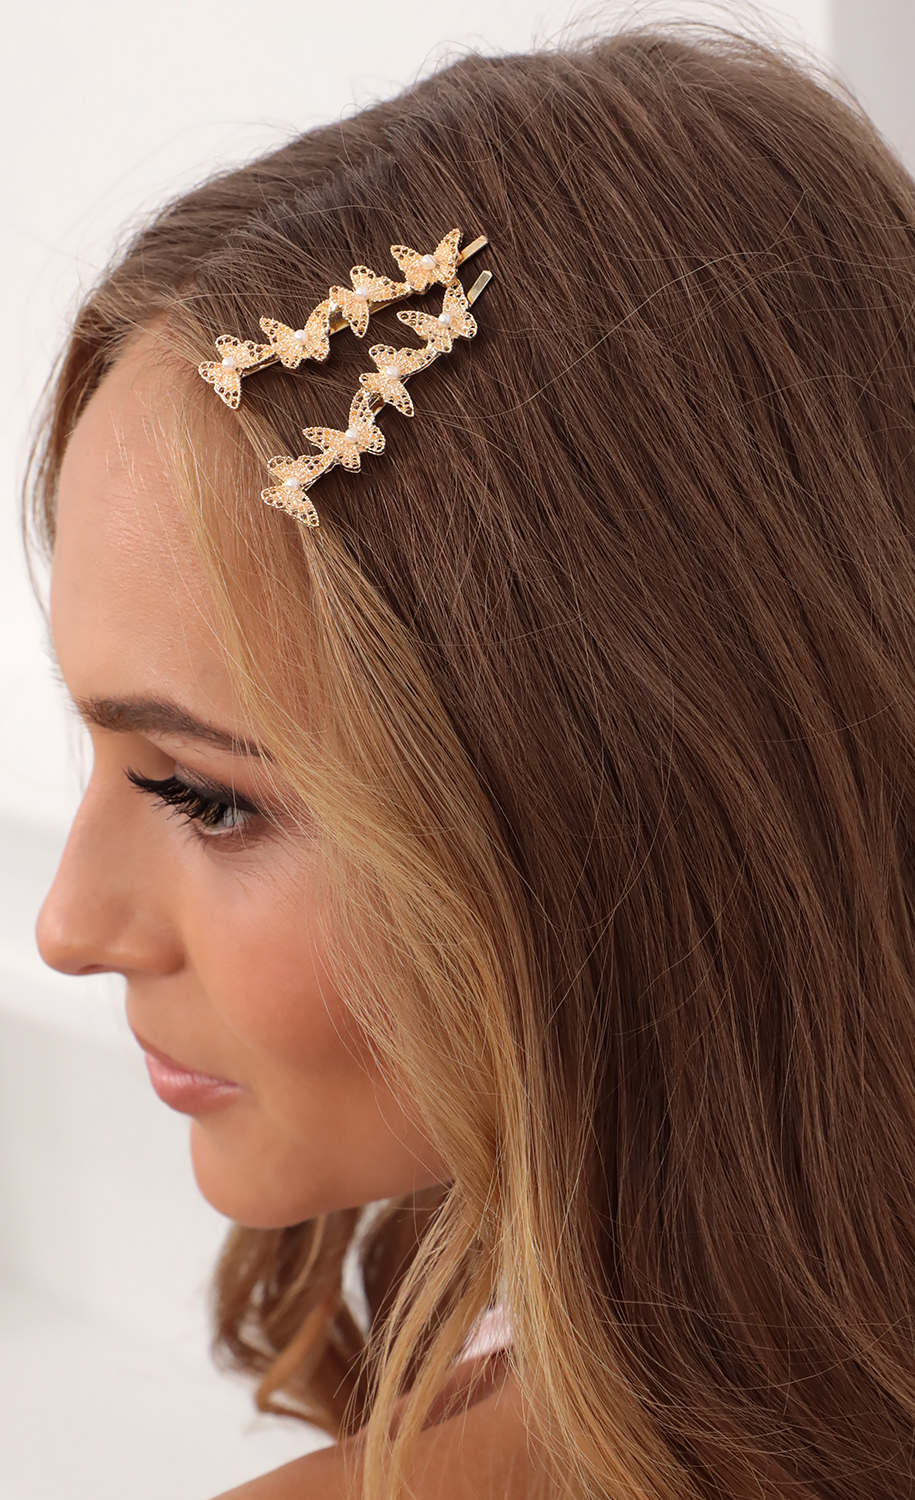 Lets Fly Away Hair Clips Set in Gold